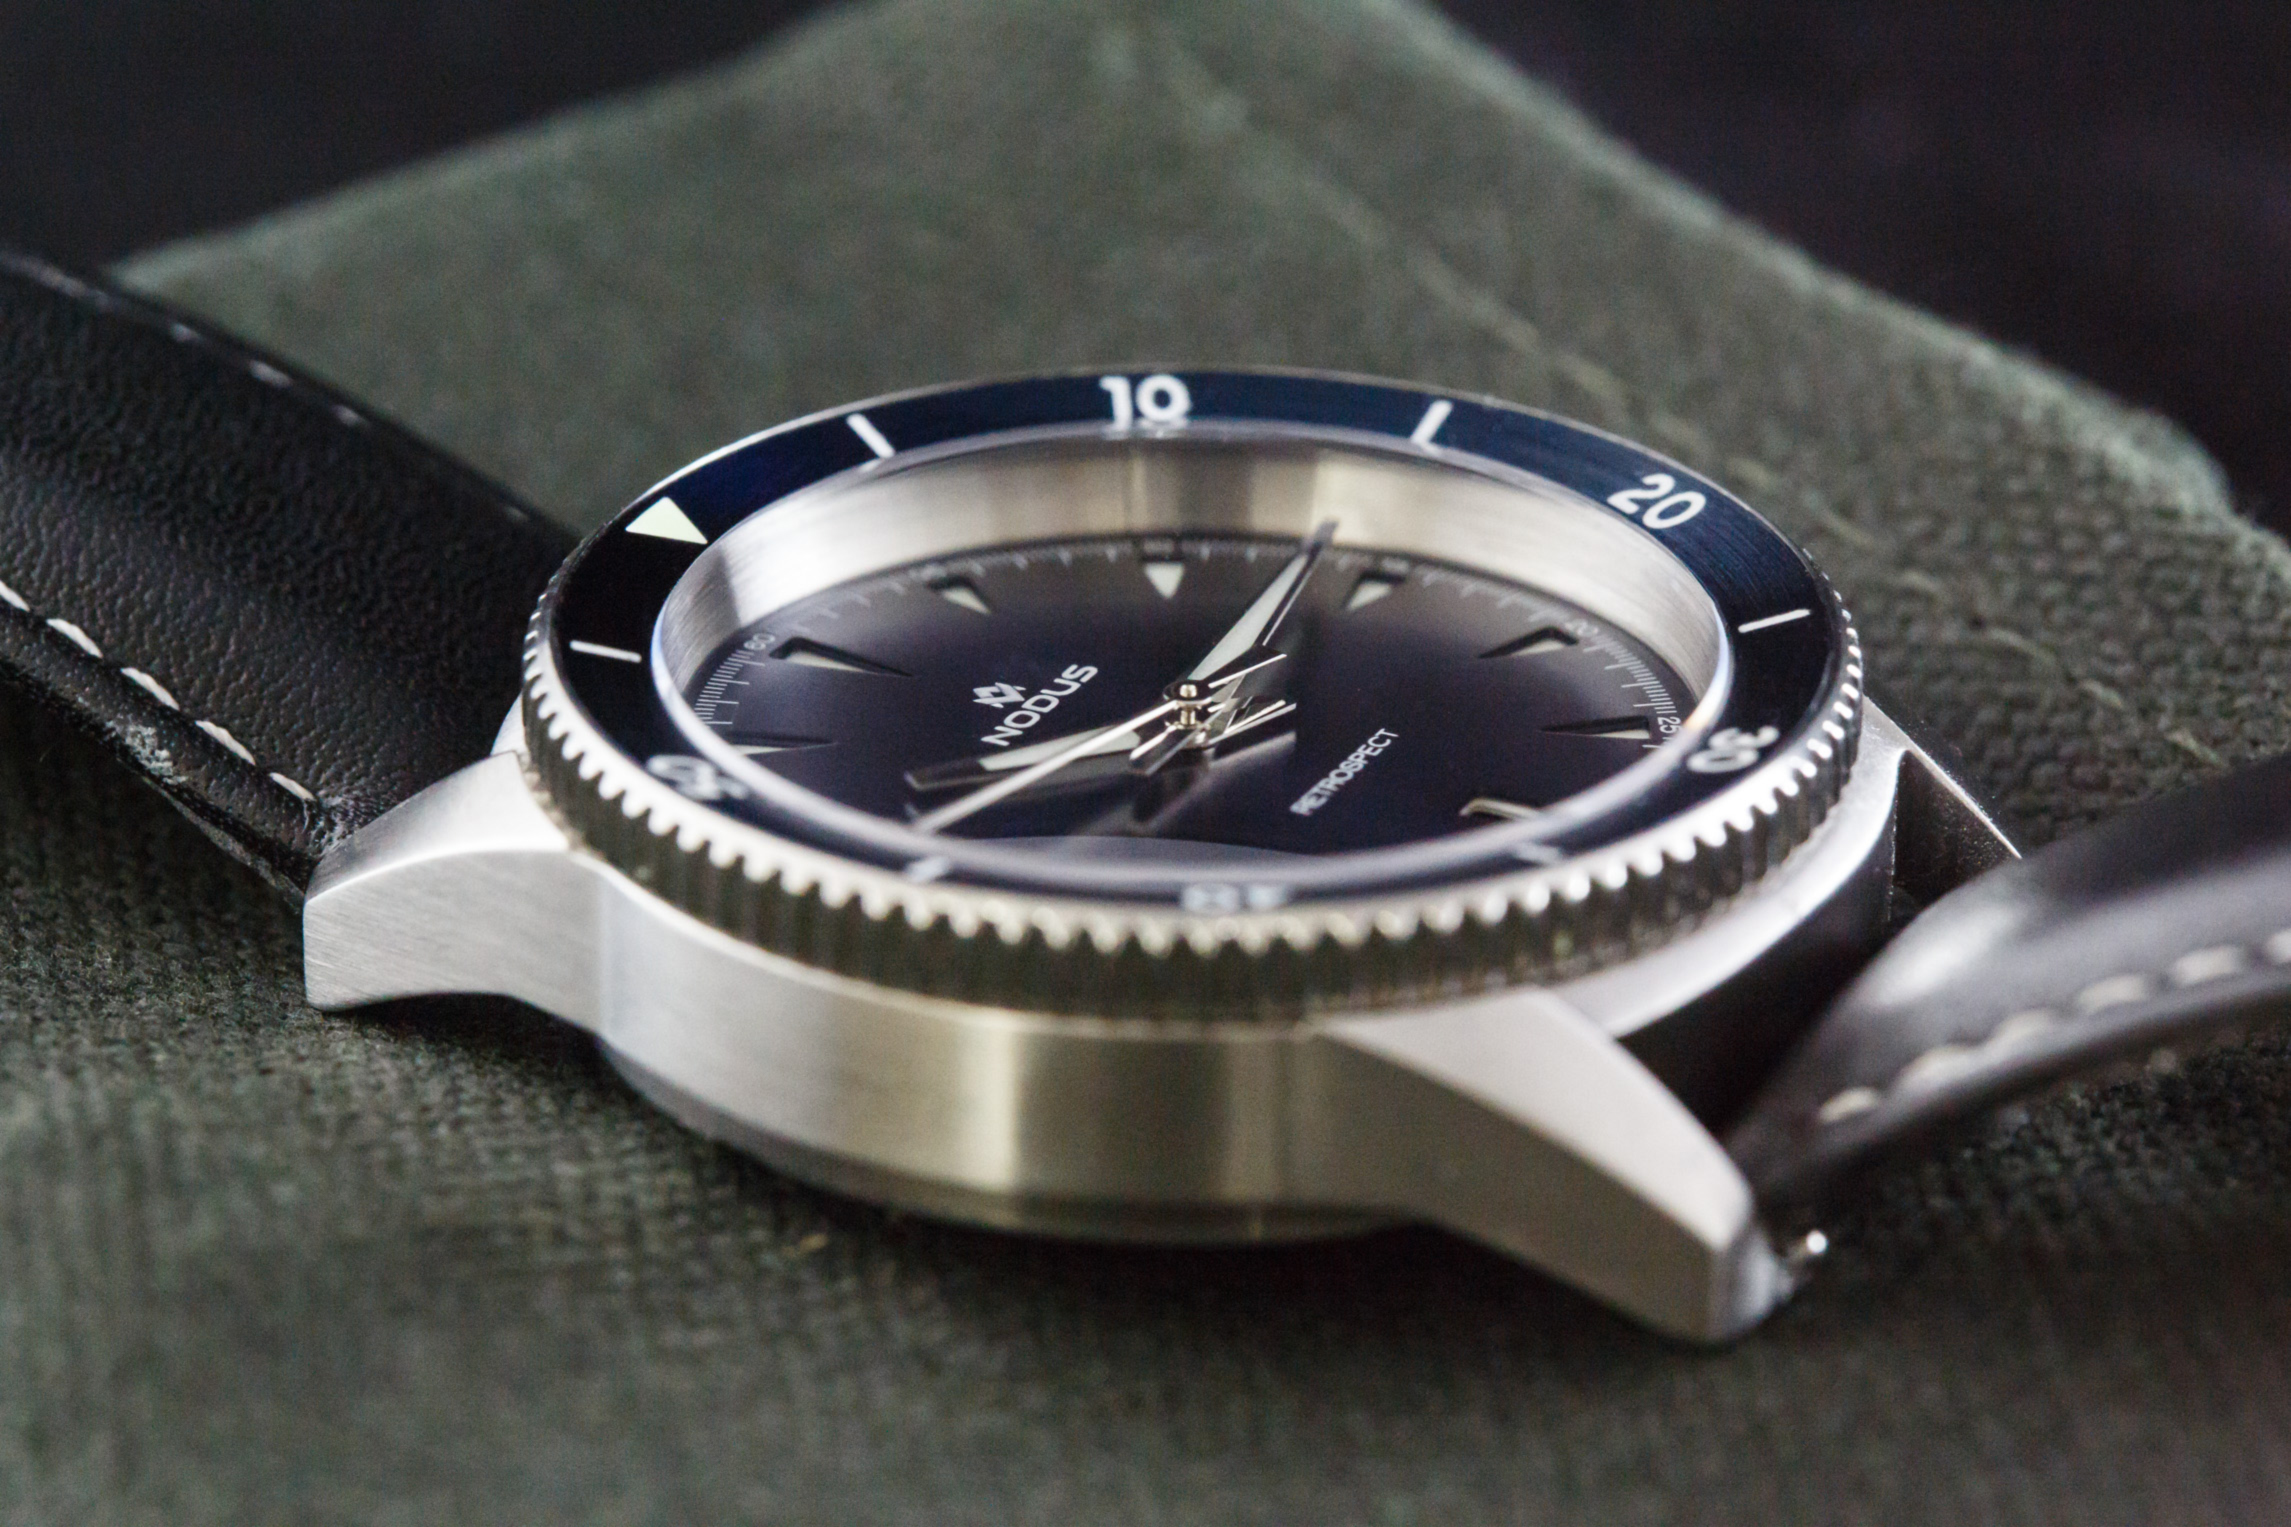 The sandwich dial adds tremendous depth to the overall appearance of the watch.